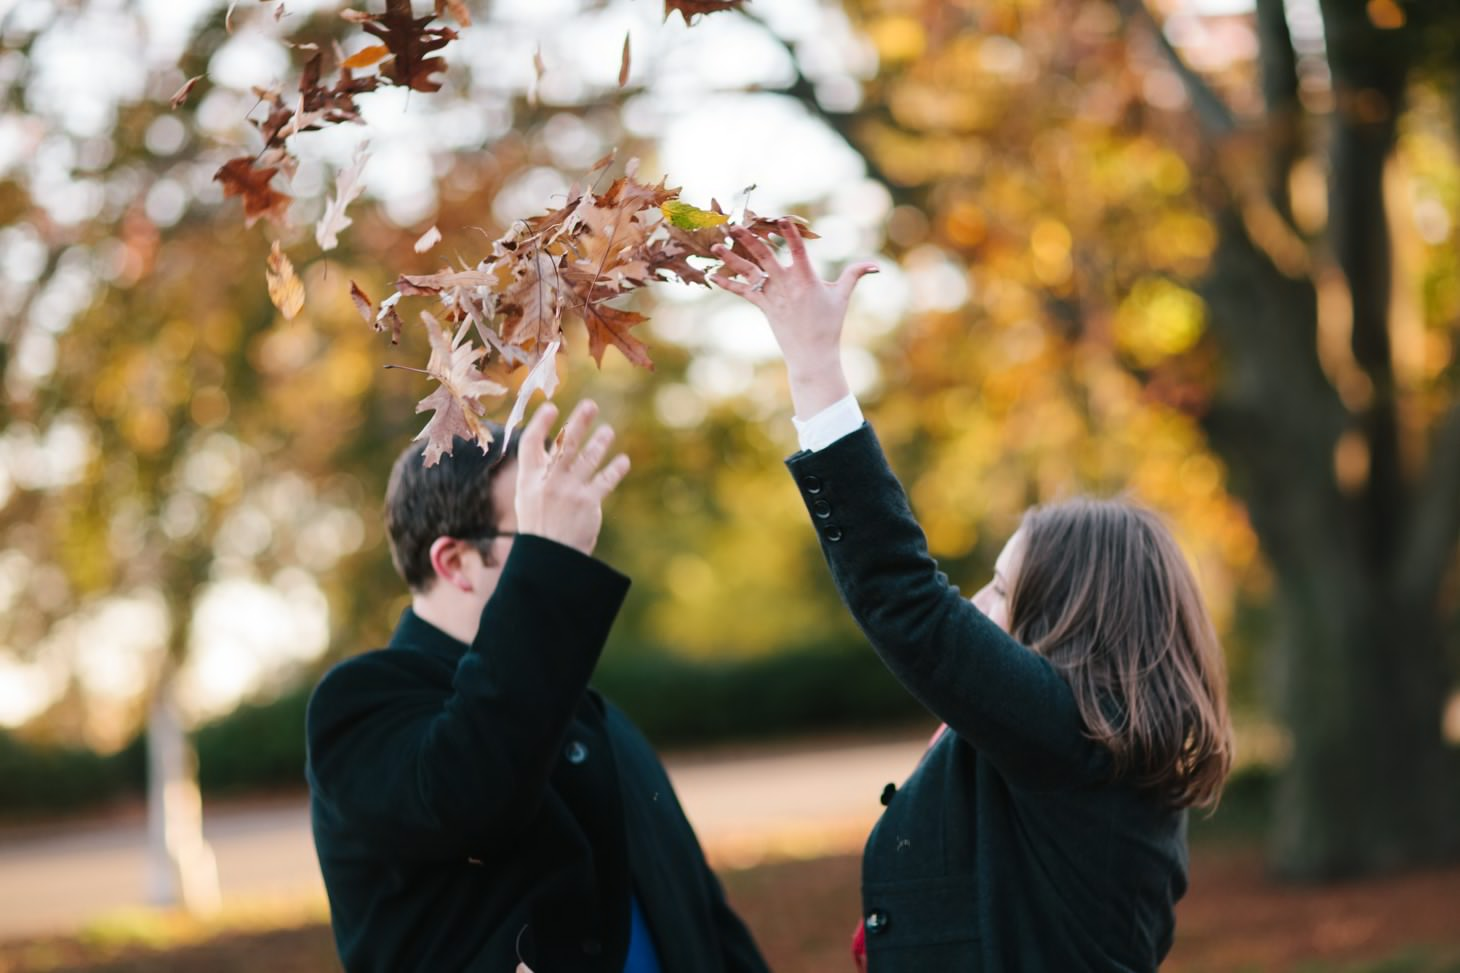 004-nyc-wedding-portrait-photographer-engagement-photos-cloisters-fall-leaves-smitten-chickens.jpg